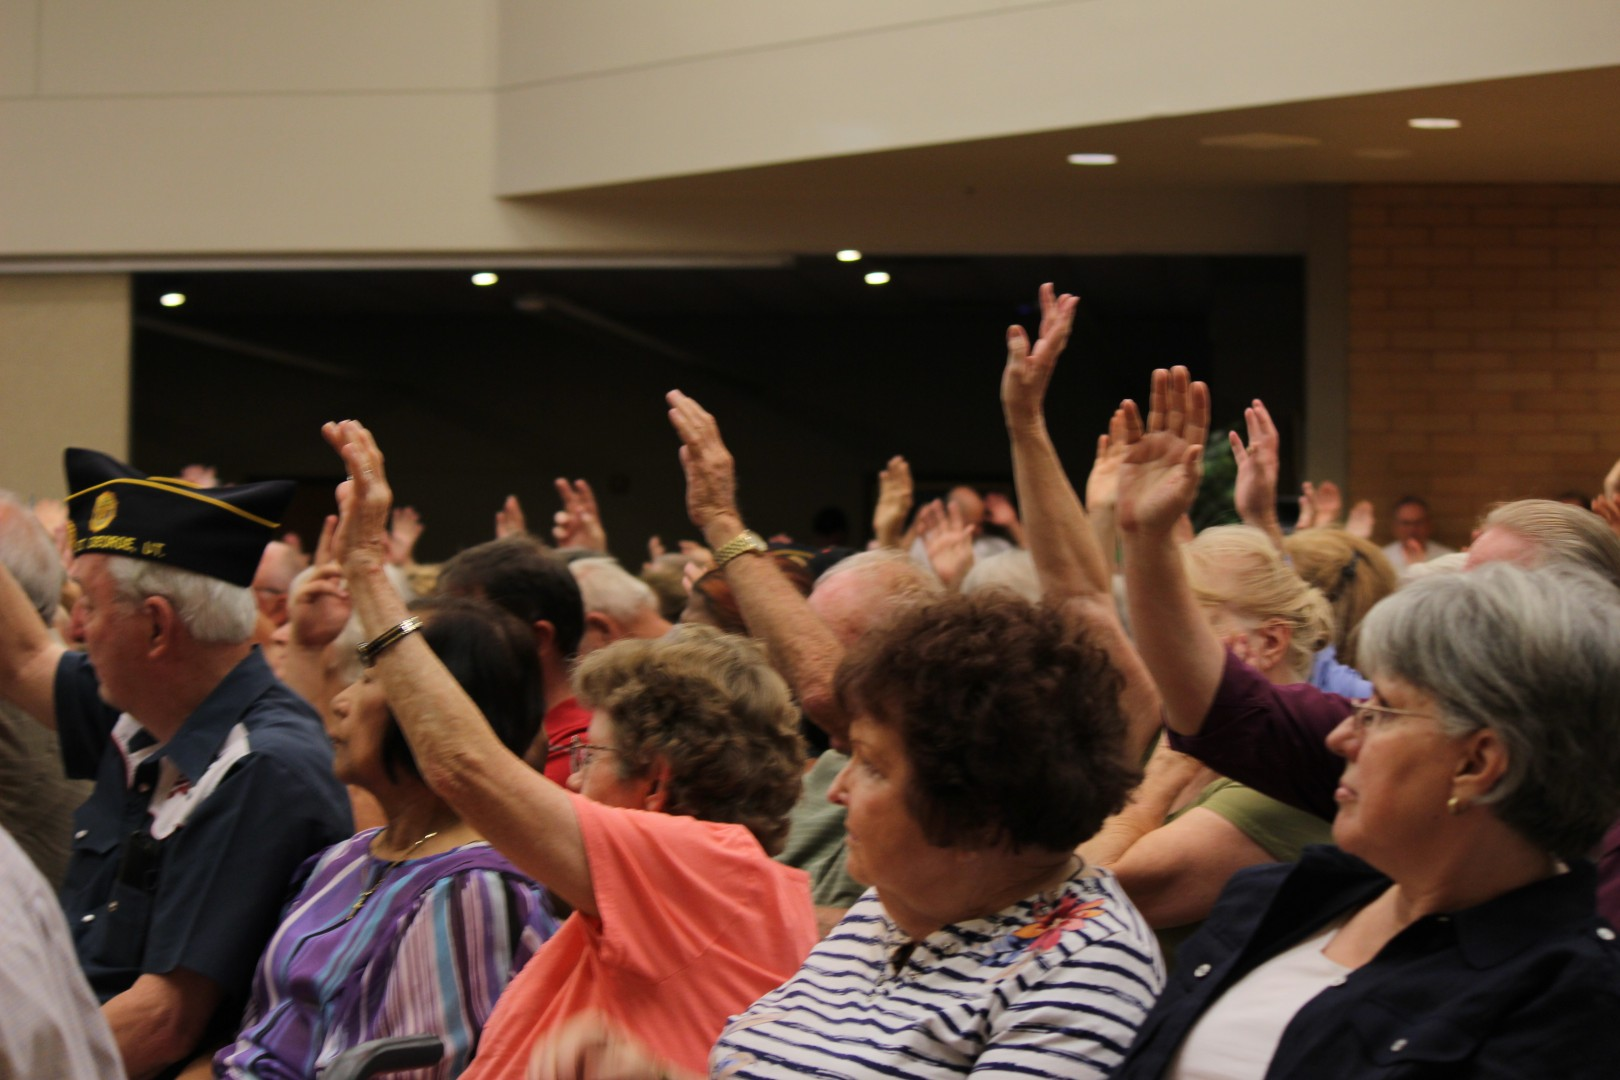 Members of the audience raise their hands during Mike Lee's town hall meeting at Dixie Statue University in St. George on Aug. 29, 2014 | Photo by Devan Chavez, St. George News.